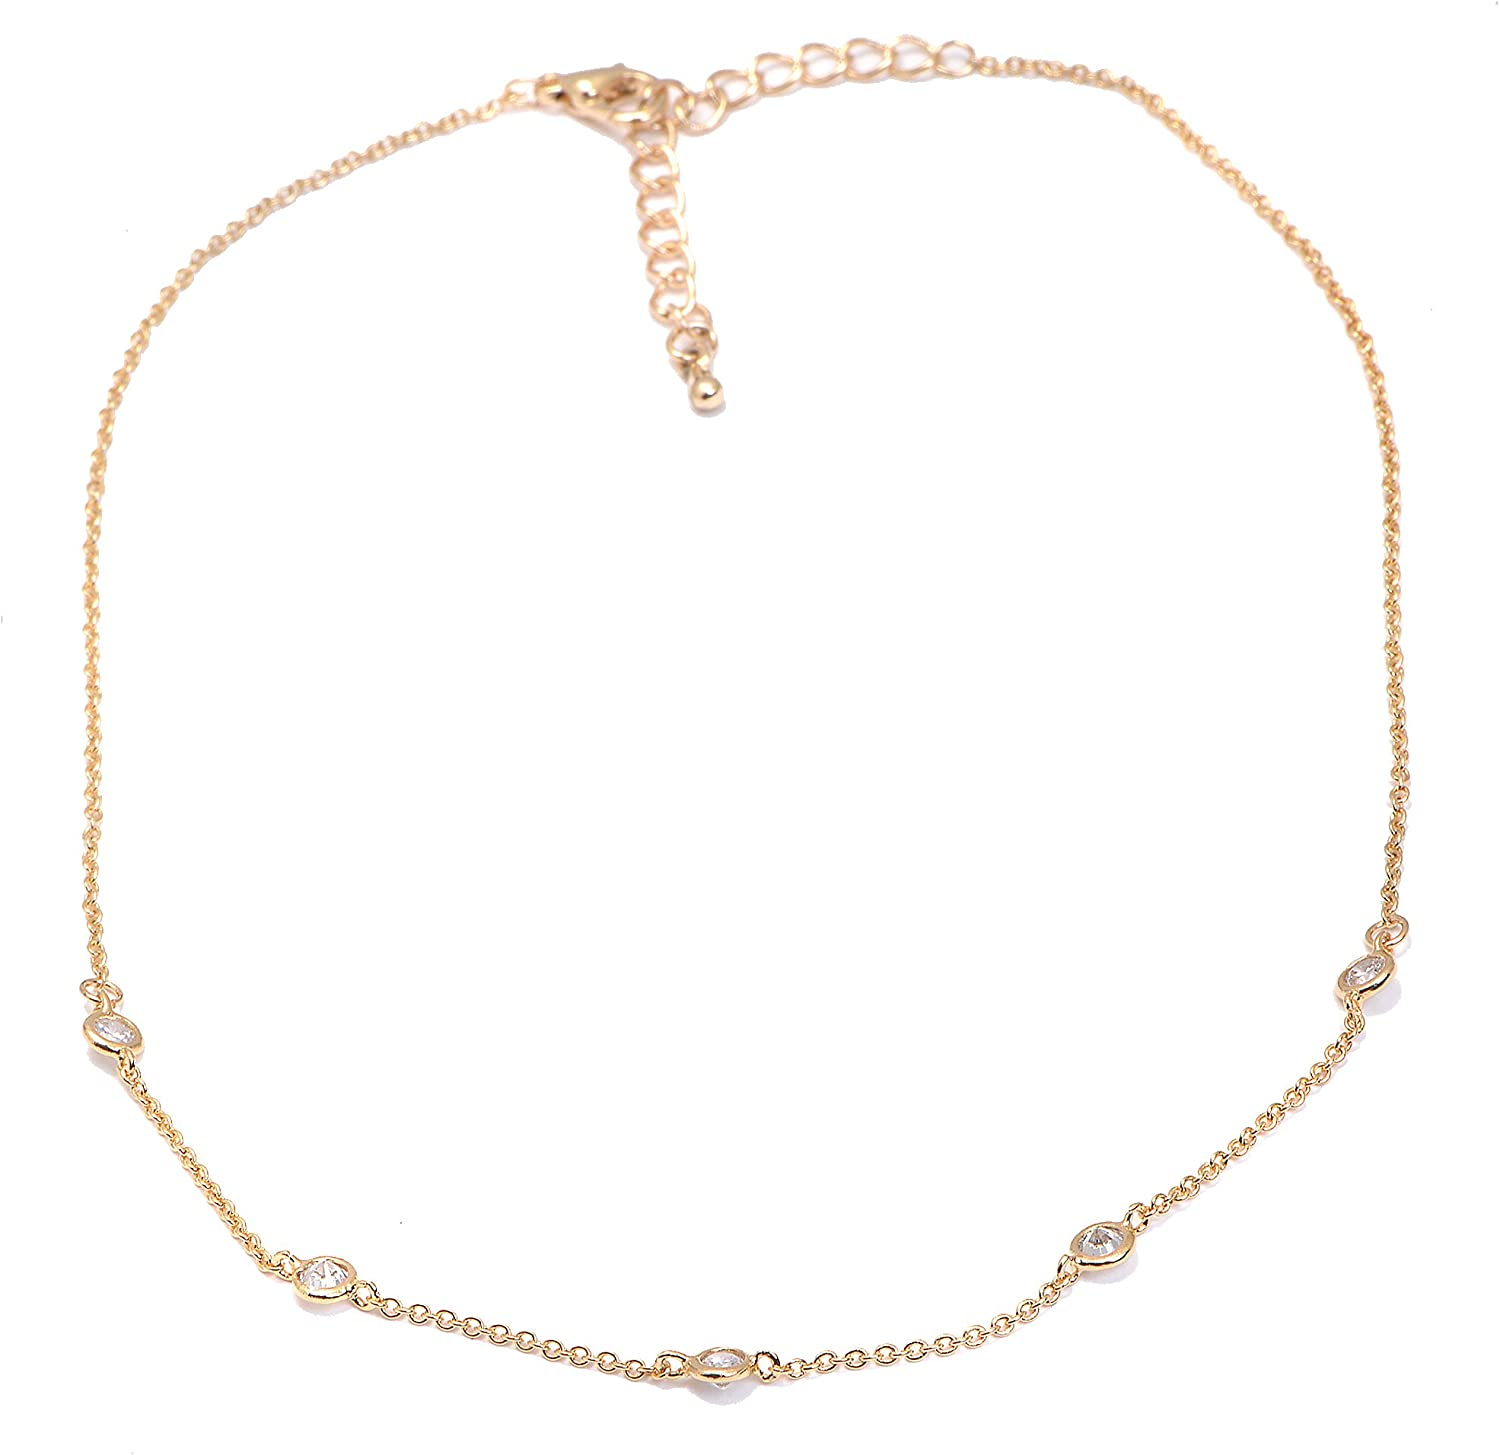 Spinningdaisy Crystal Accent Tiny Chain Satellite Choker Necklace